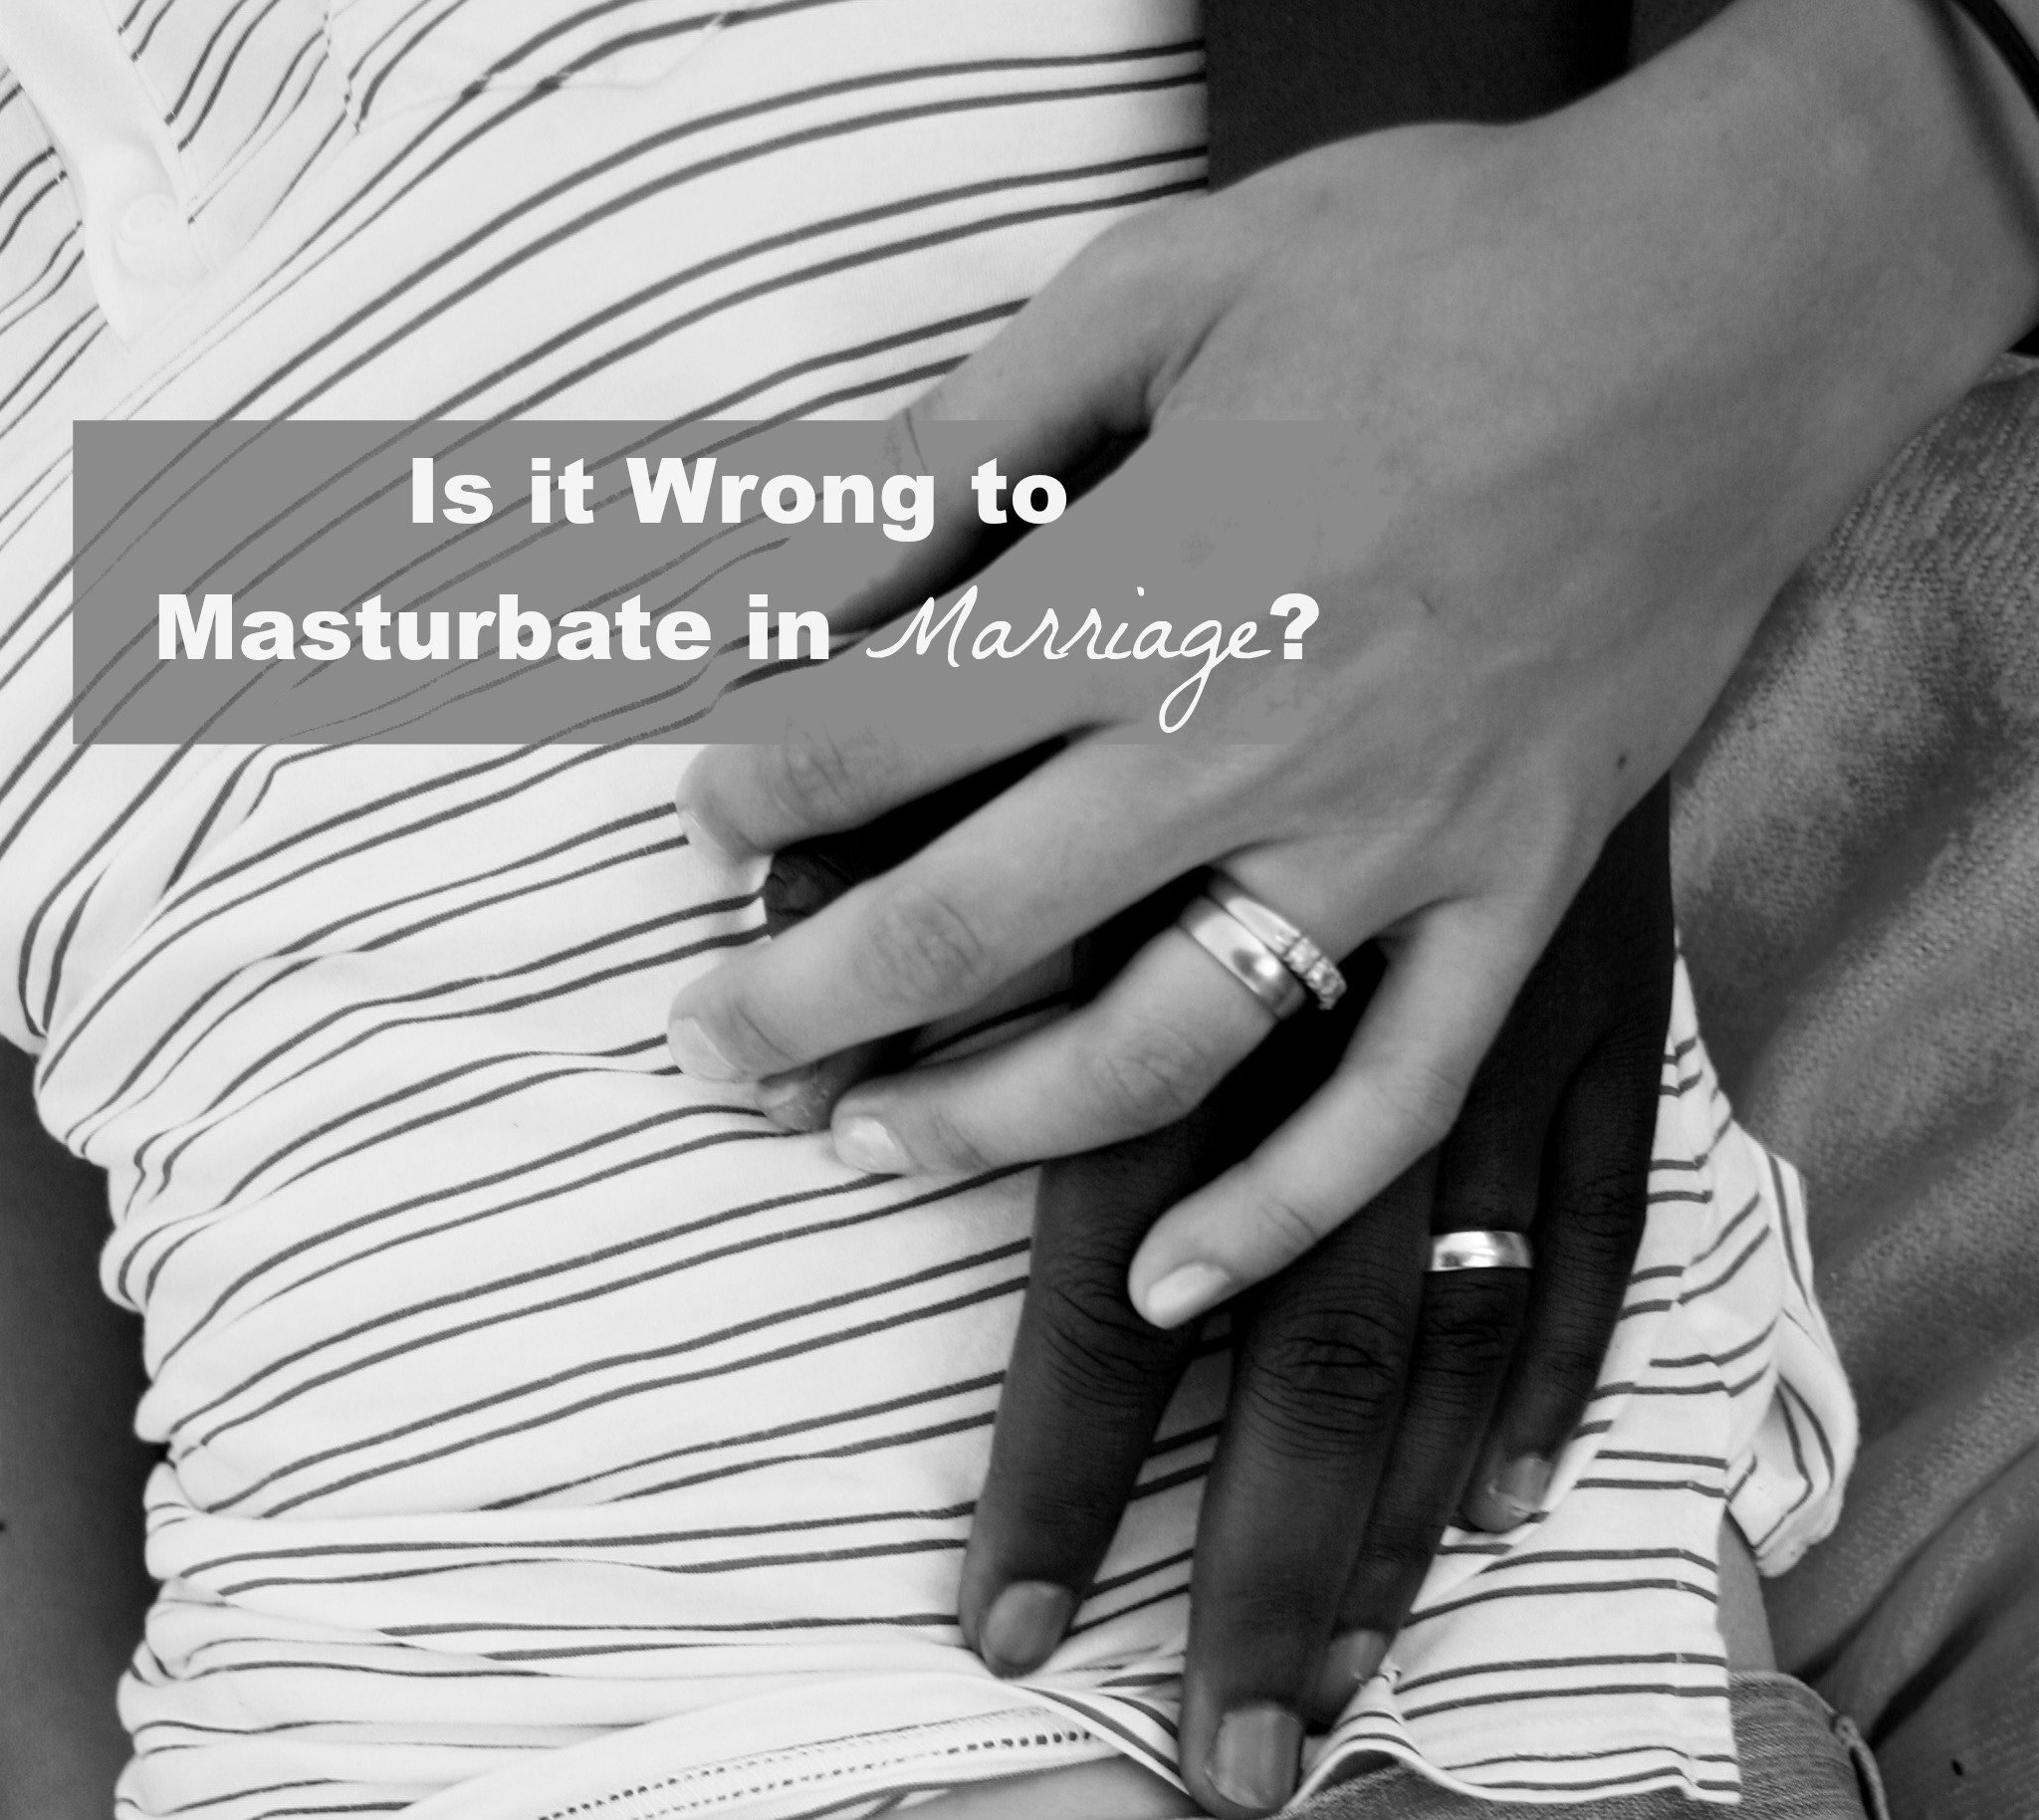 is-it-wrong-to-masturbate-in-marriage